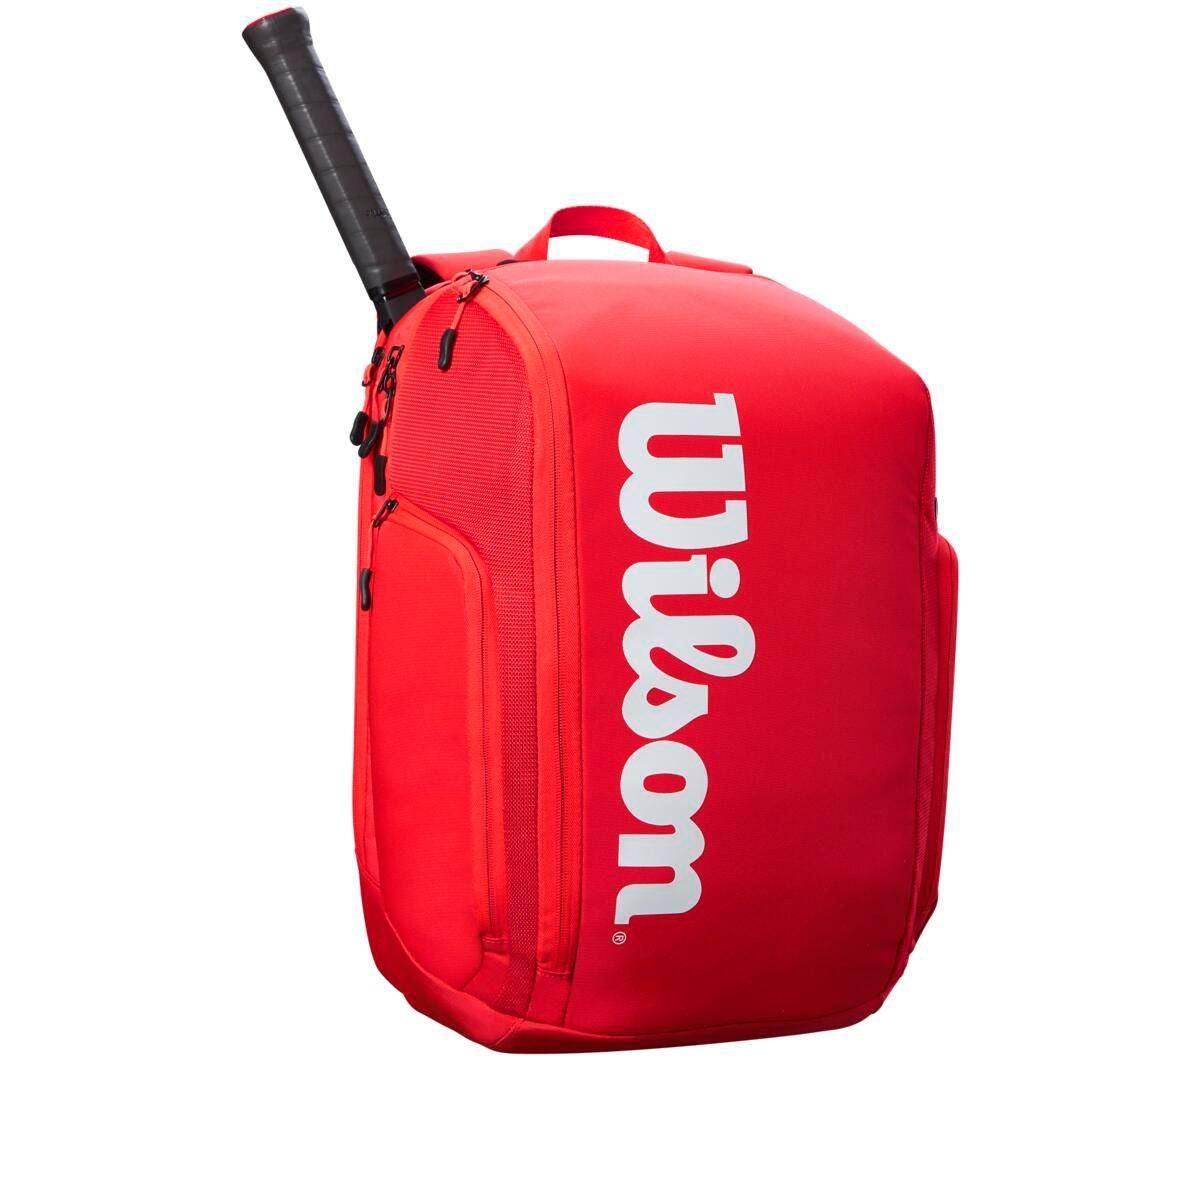 Wilson Super Tour Backpack in Red  - Unisex - Red